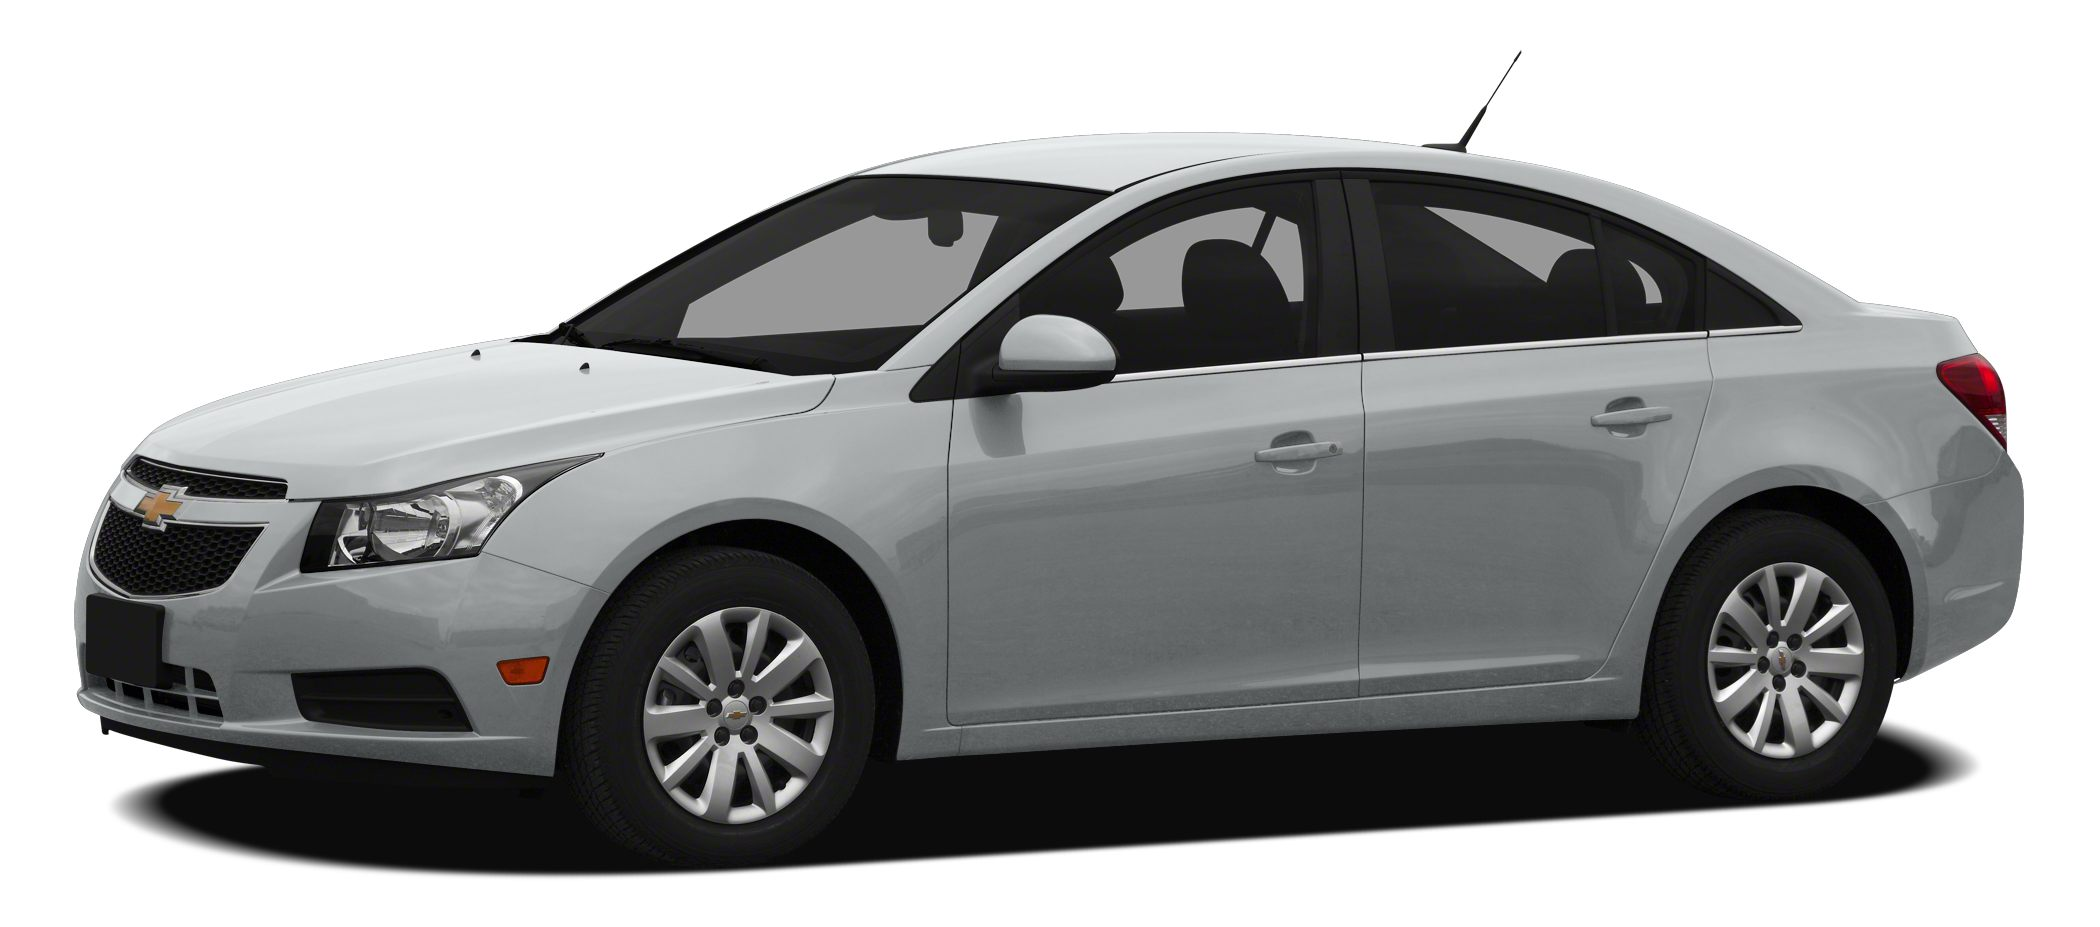 2012 Chevrolet Cruze ECO Call us today This is the Best Deal on the Internet Miles 55273Color